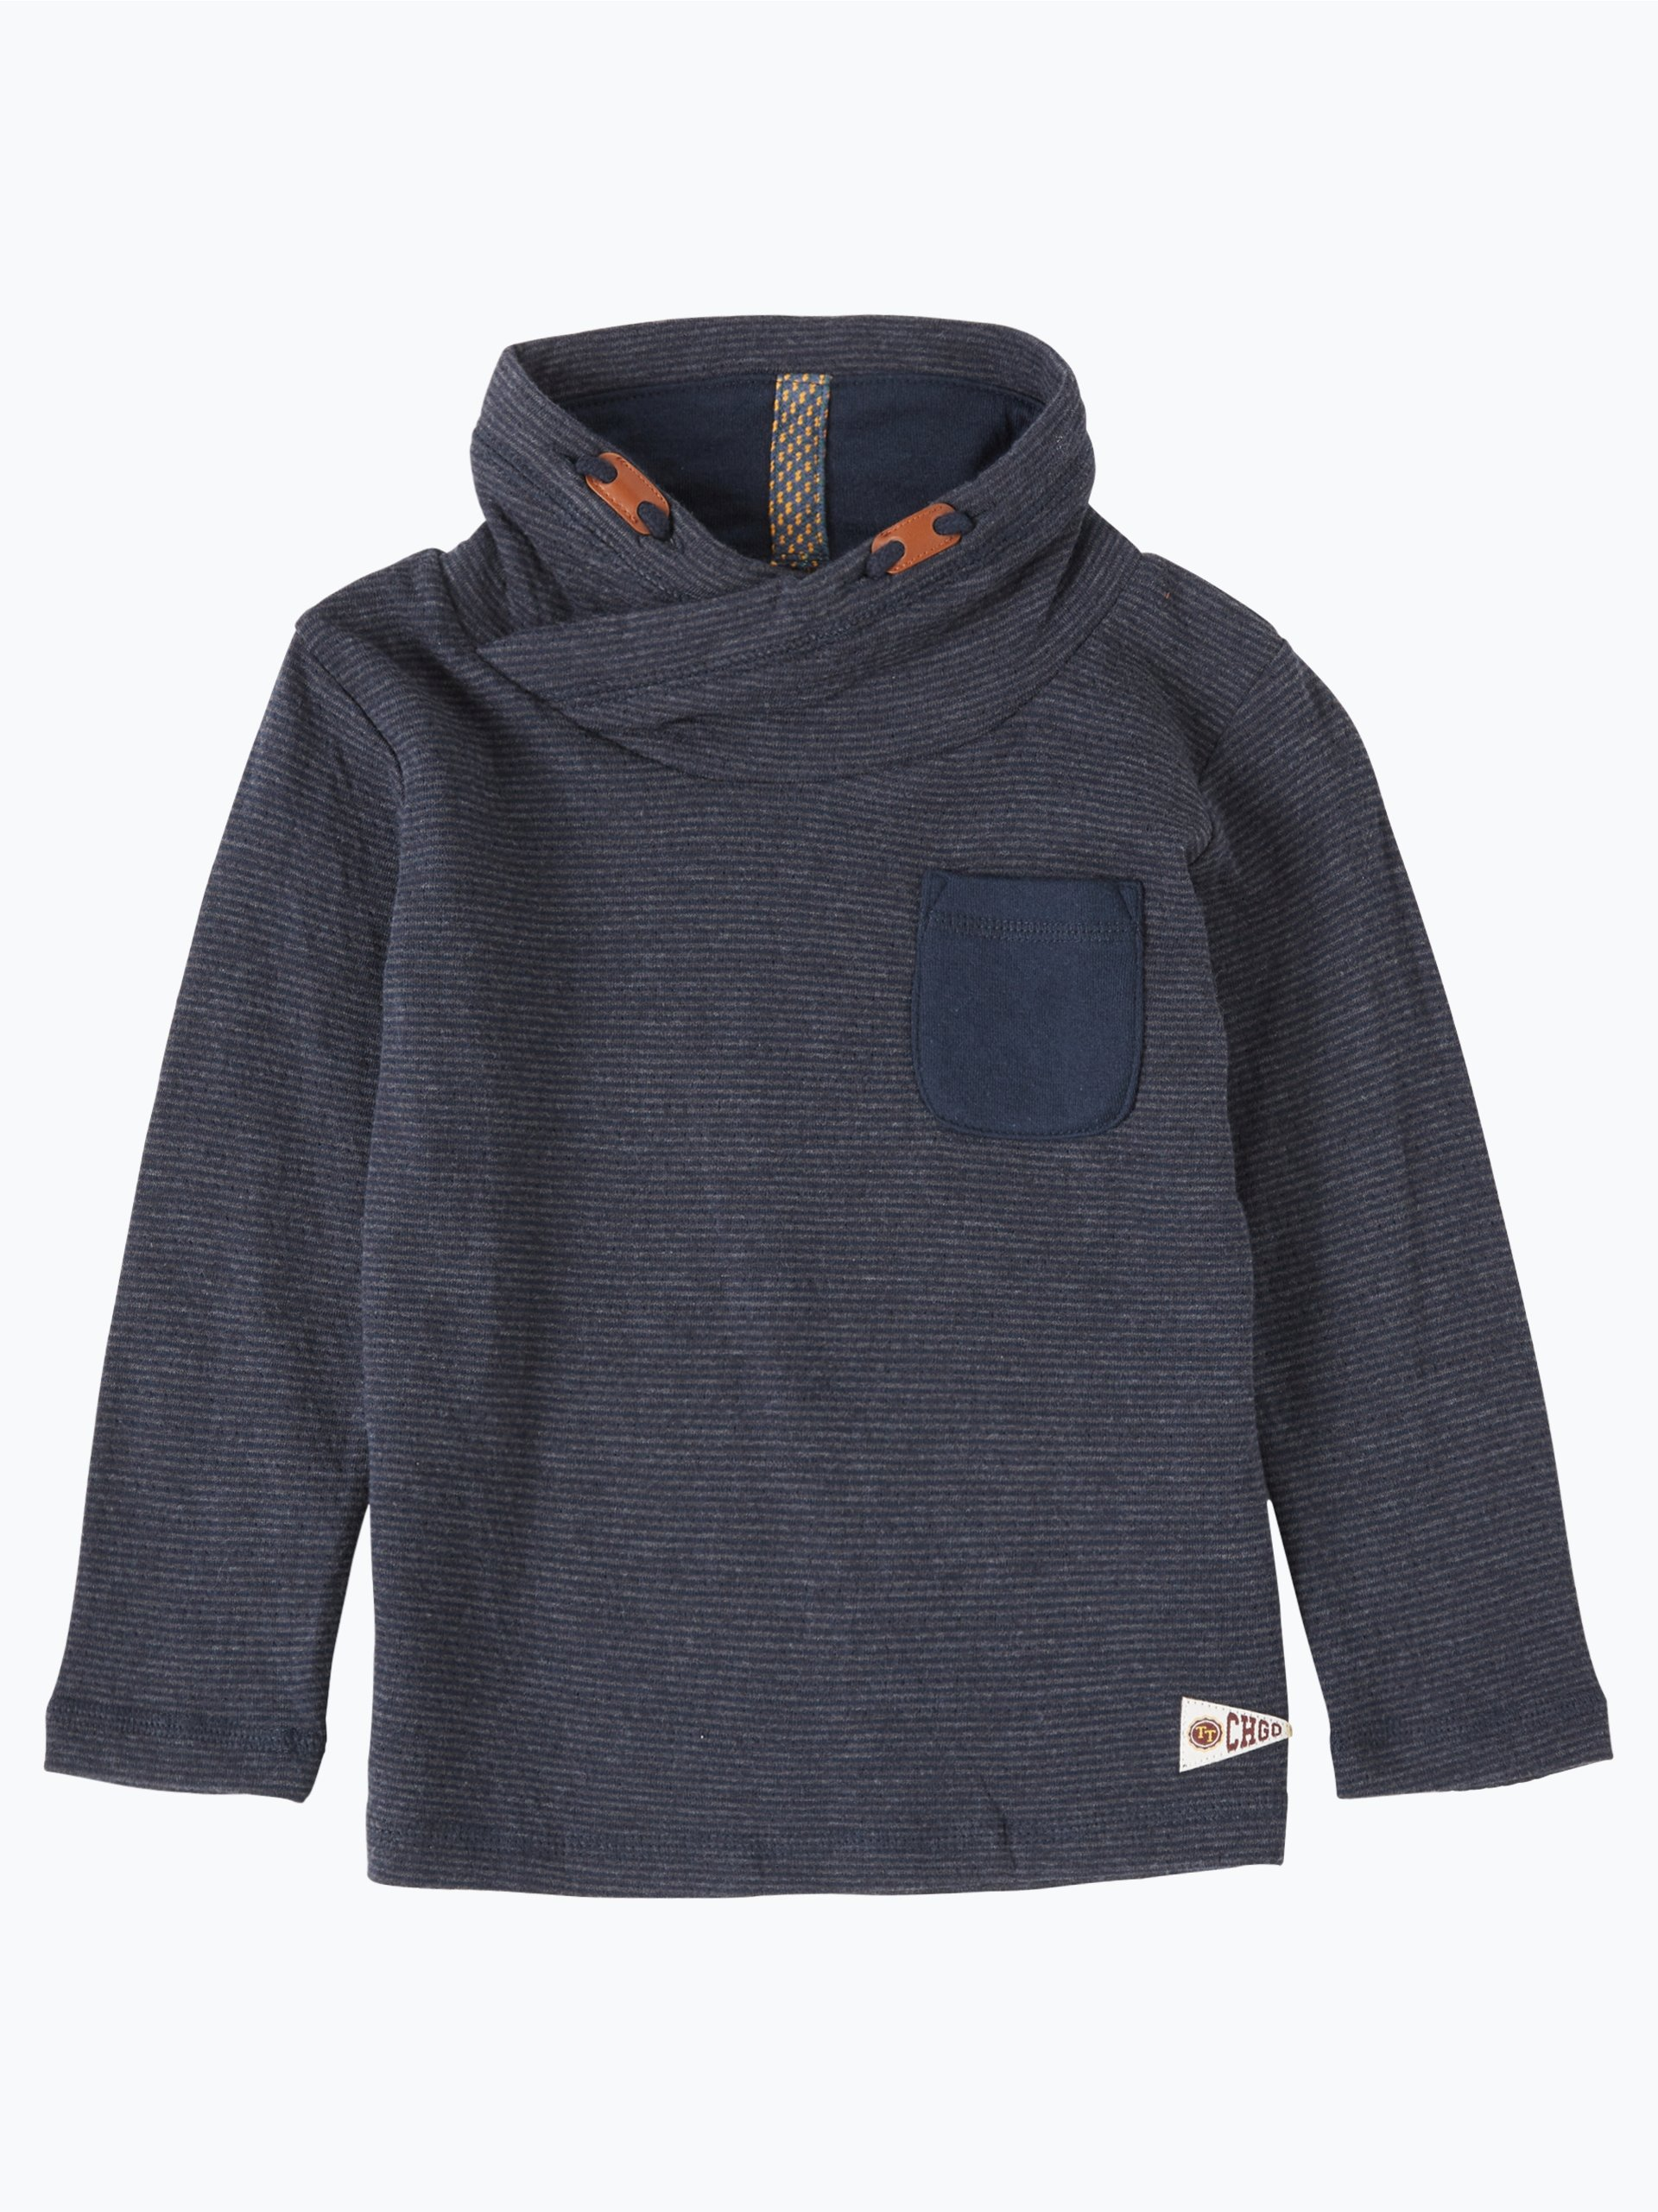 Tom Tailor Jungen Sweatshirt